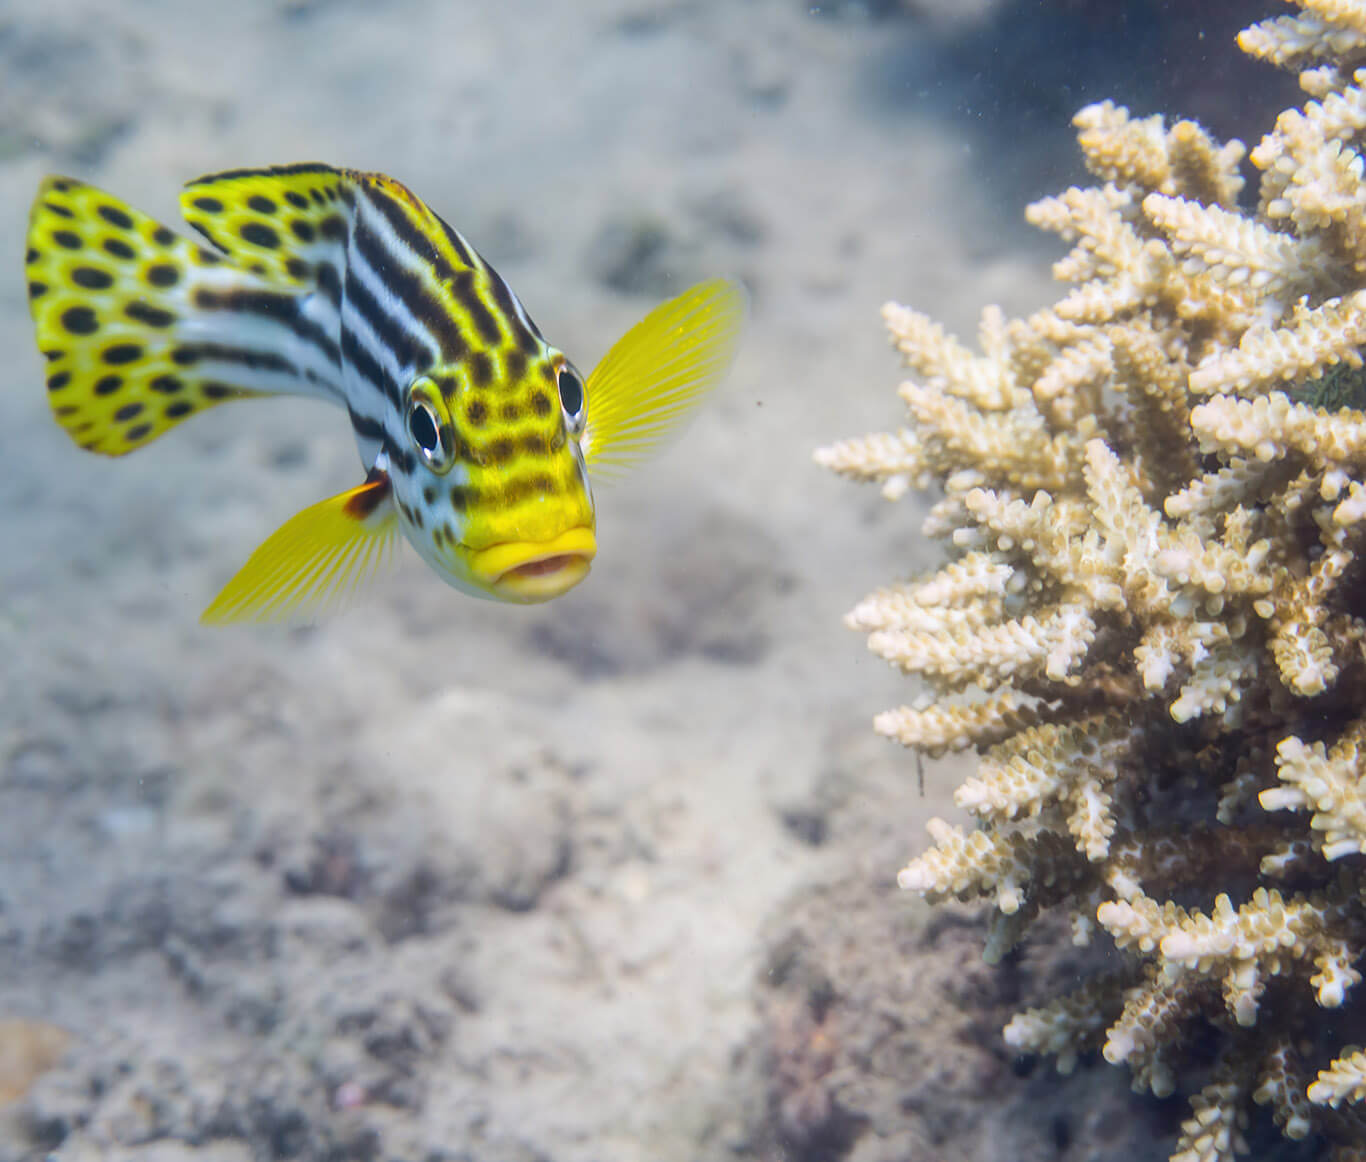 What kind of marine life I can see during a dive in Sri Lanka? Discover tropical fish while scuba diving with Divinguru in Unawatuna